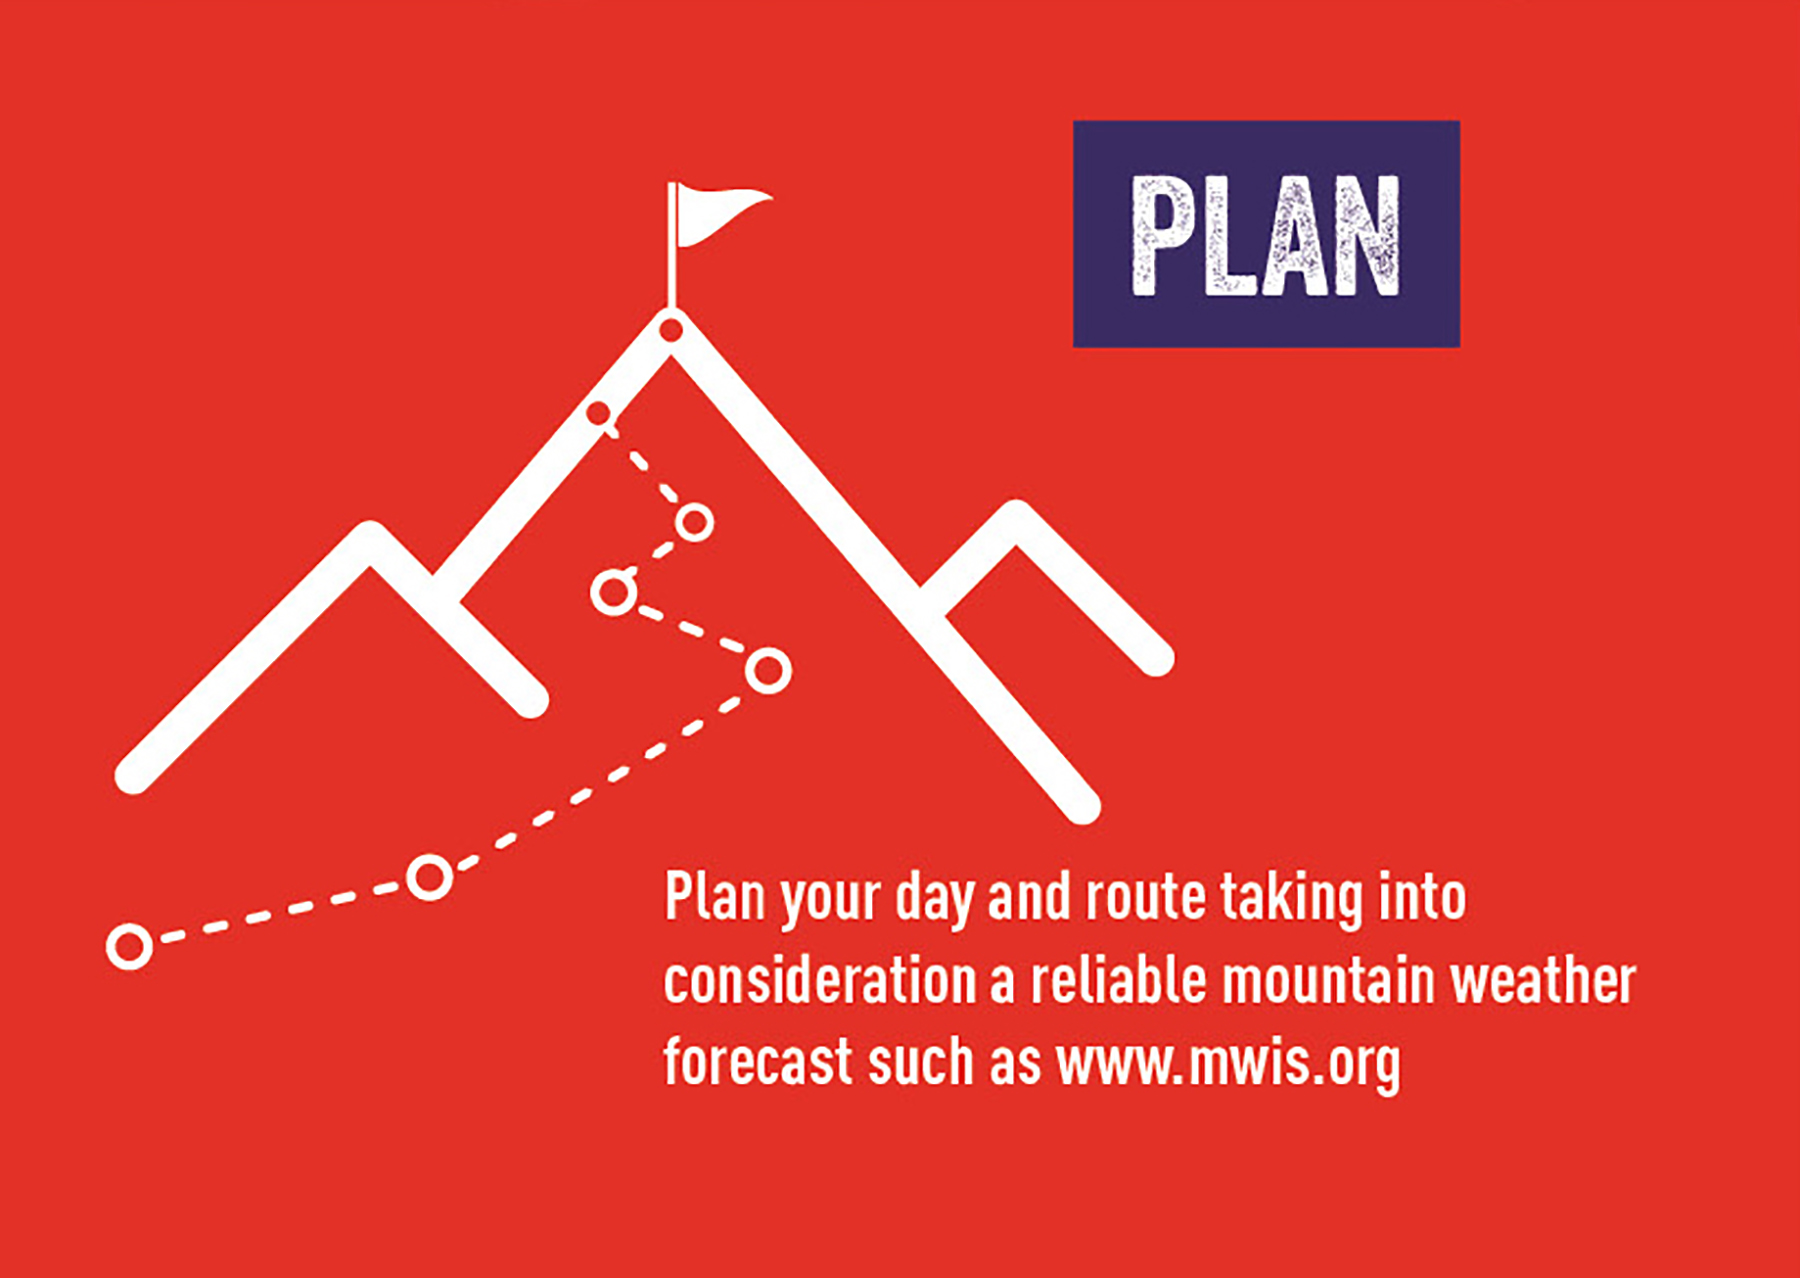 Plan your day and route